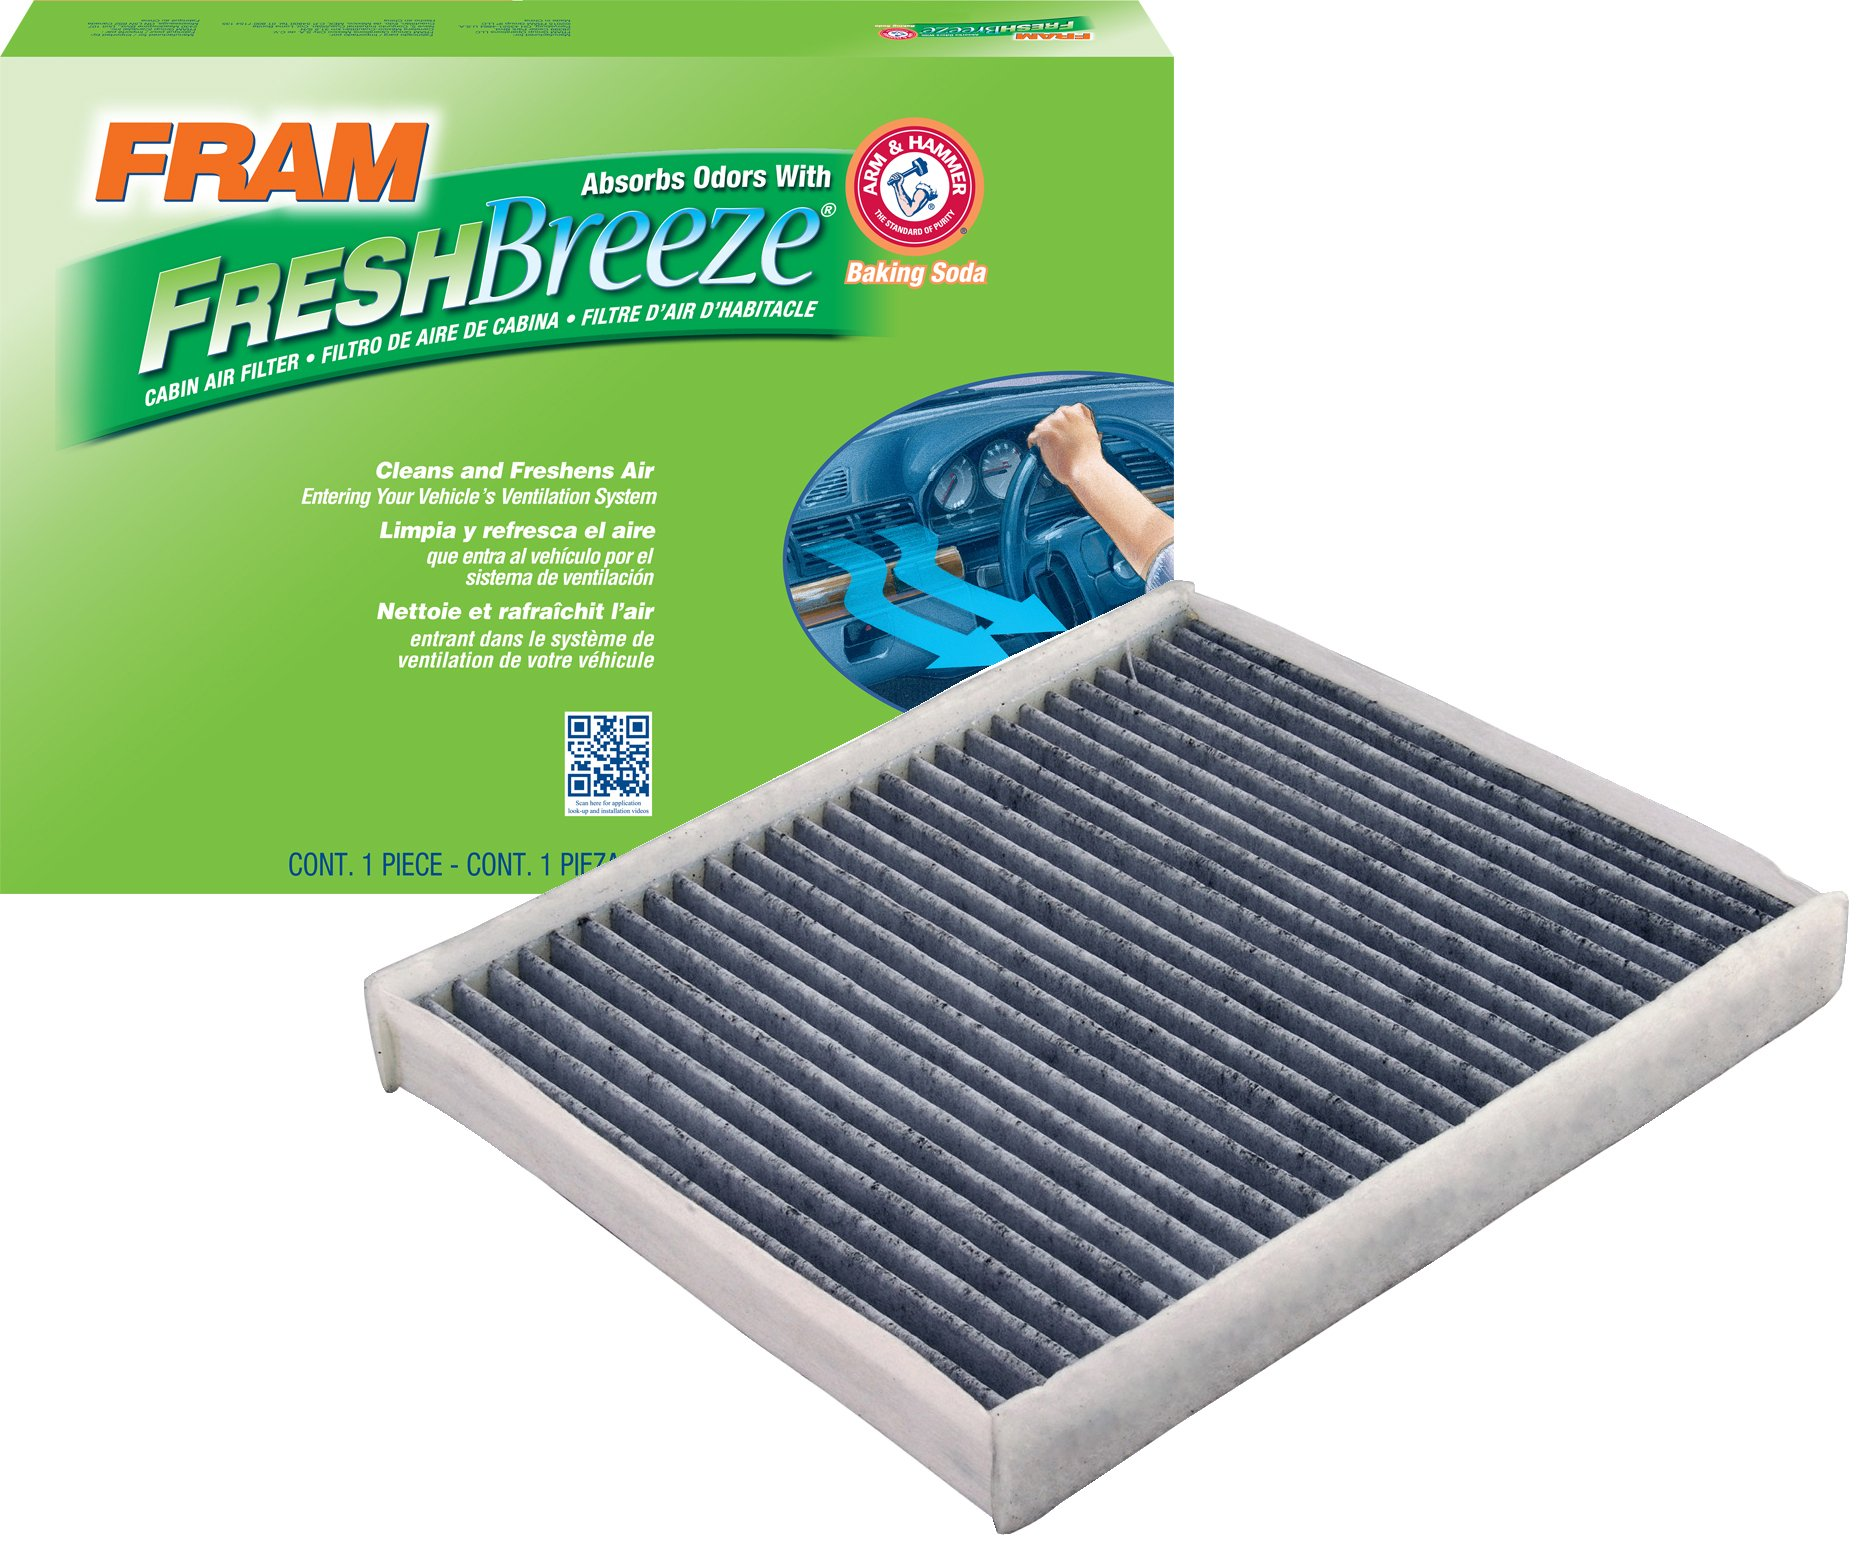 FRAM CF11176 Fresh Breeze Cabin Air Filter with Arm & Hammer